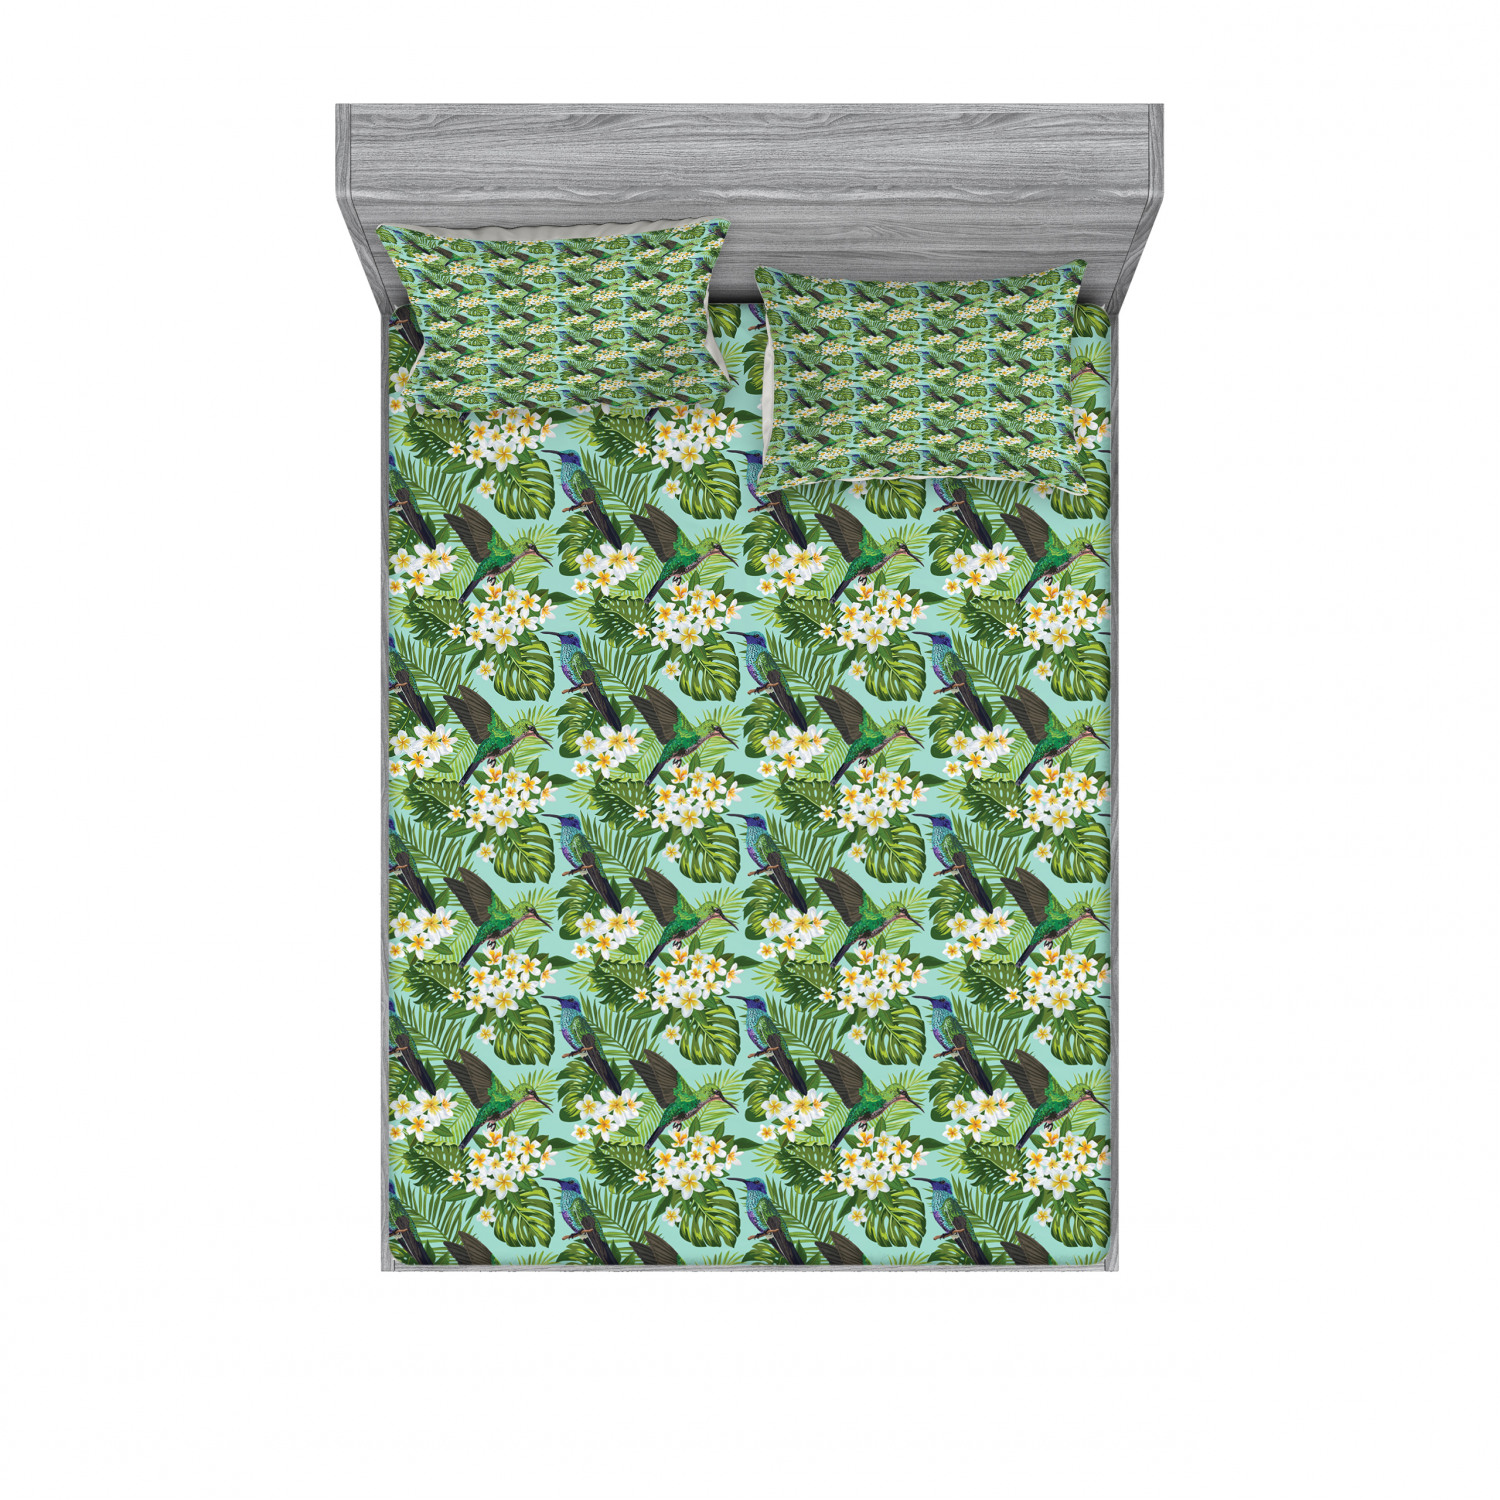 Details about  /Ambesonne Tropical Summer Fitted Sheet Pillow Sham Set Bedding Decor in 4 Sizes